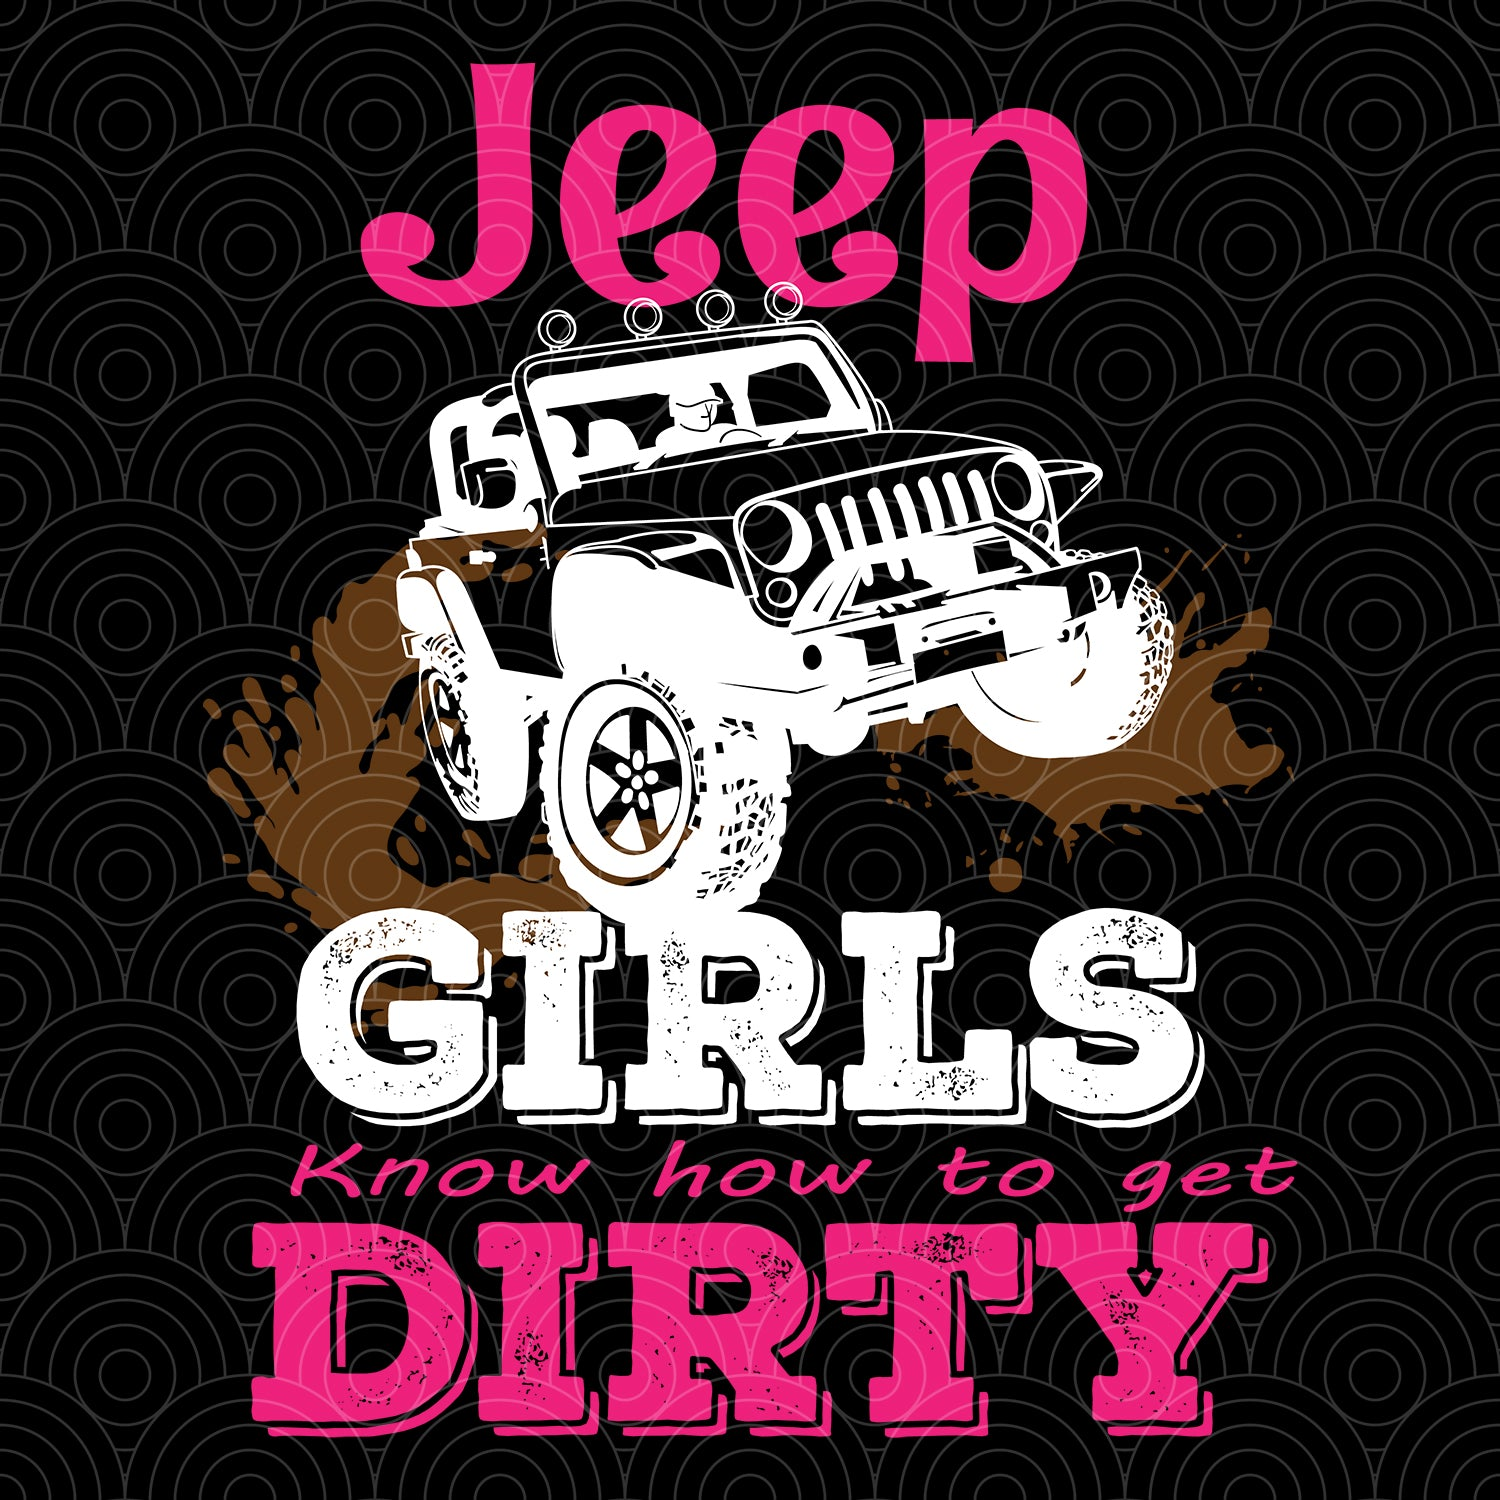 Jeep girls know hot to get dirty svg,jeep svg,jeep clipart, jeep cut file, jeep svg files, jeep lover gift, jeep decal, jeep truck svg, jeep shirt,jeep truck shirt, jeep truck print, jeep truck silhouette